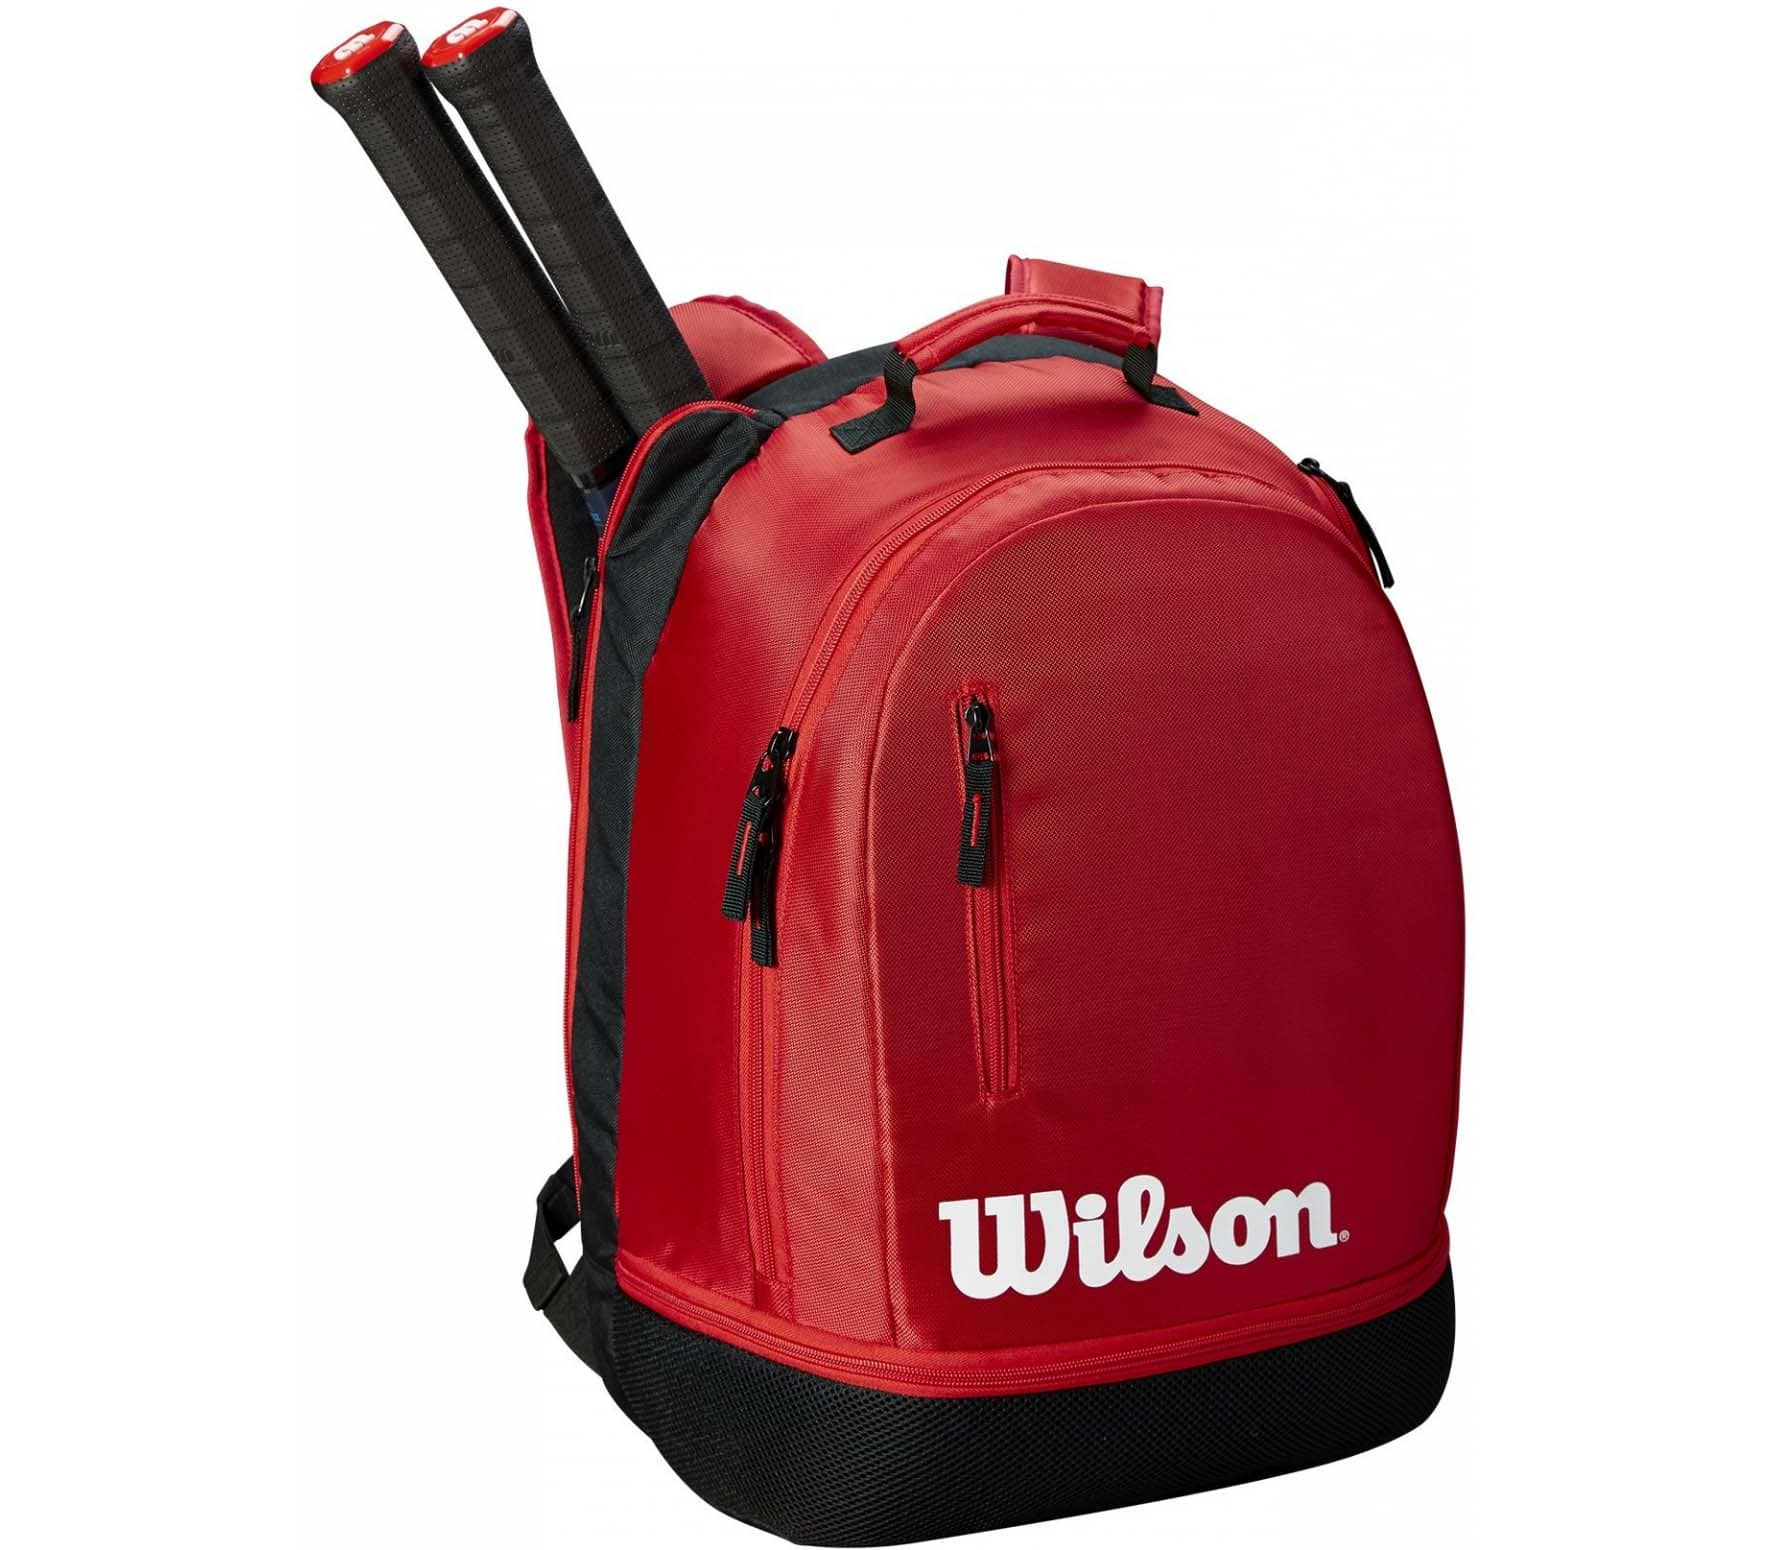 0d67fdbff4 Wilson - Team backpack tennis bag (black red) - buy it at the Keller ...